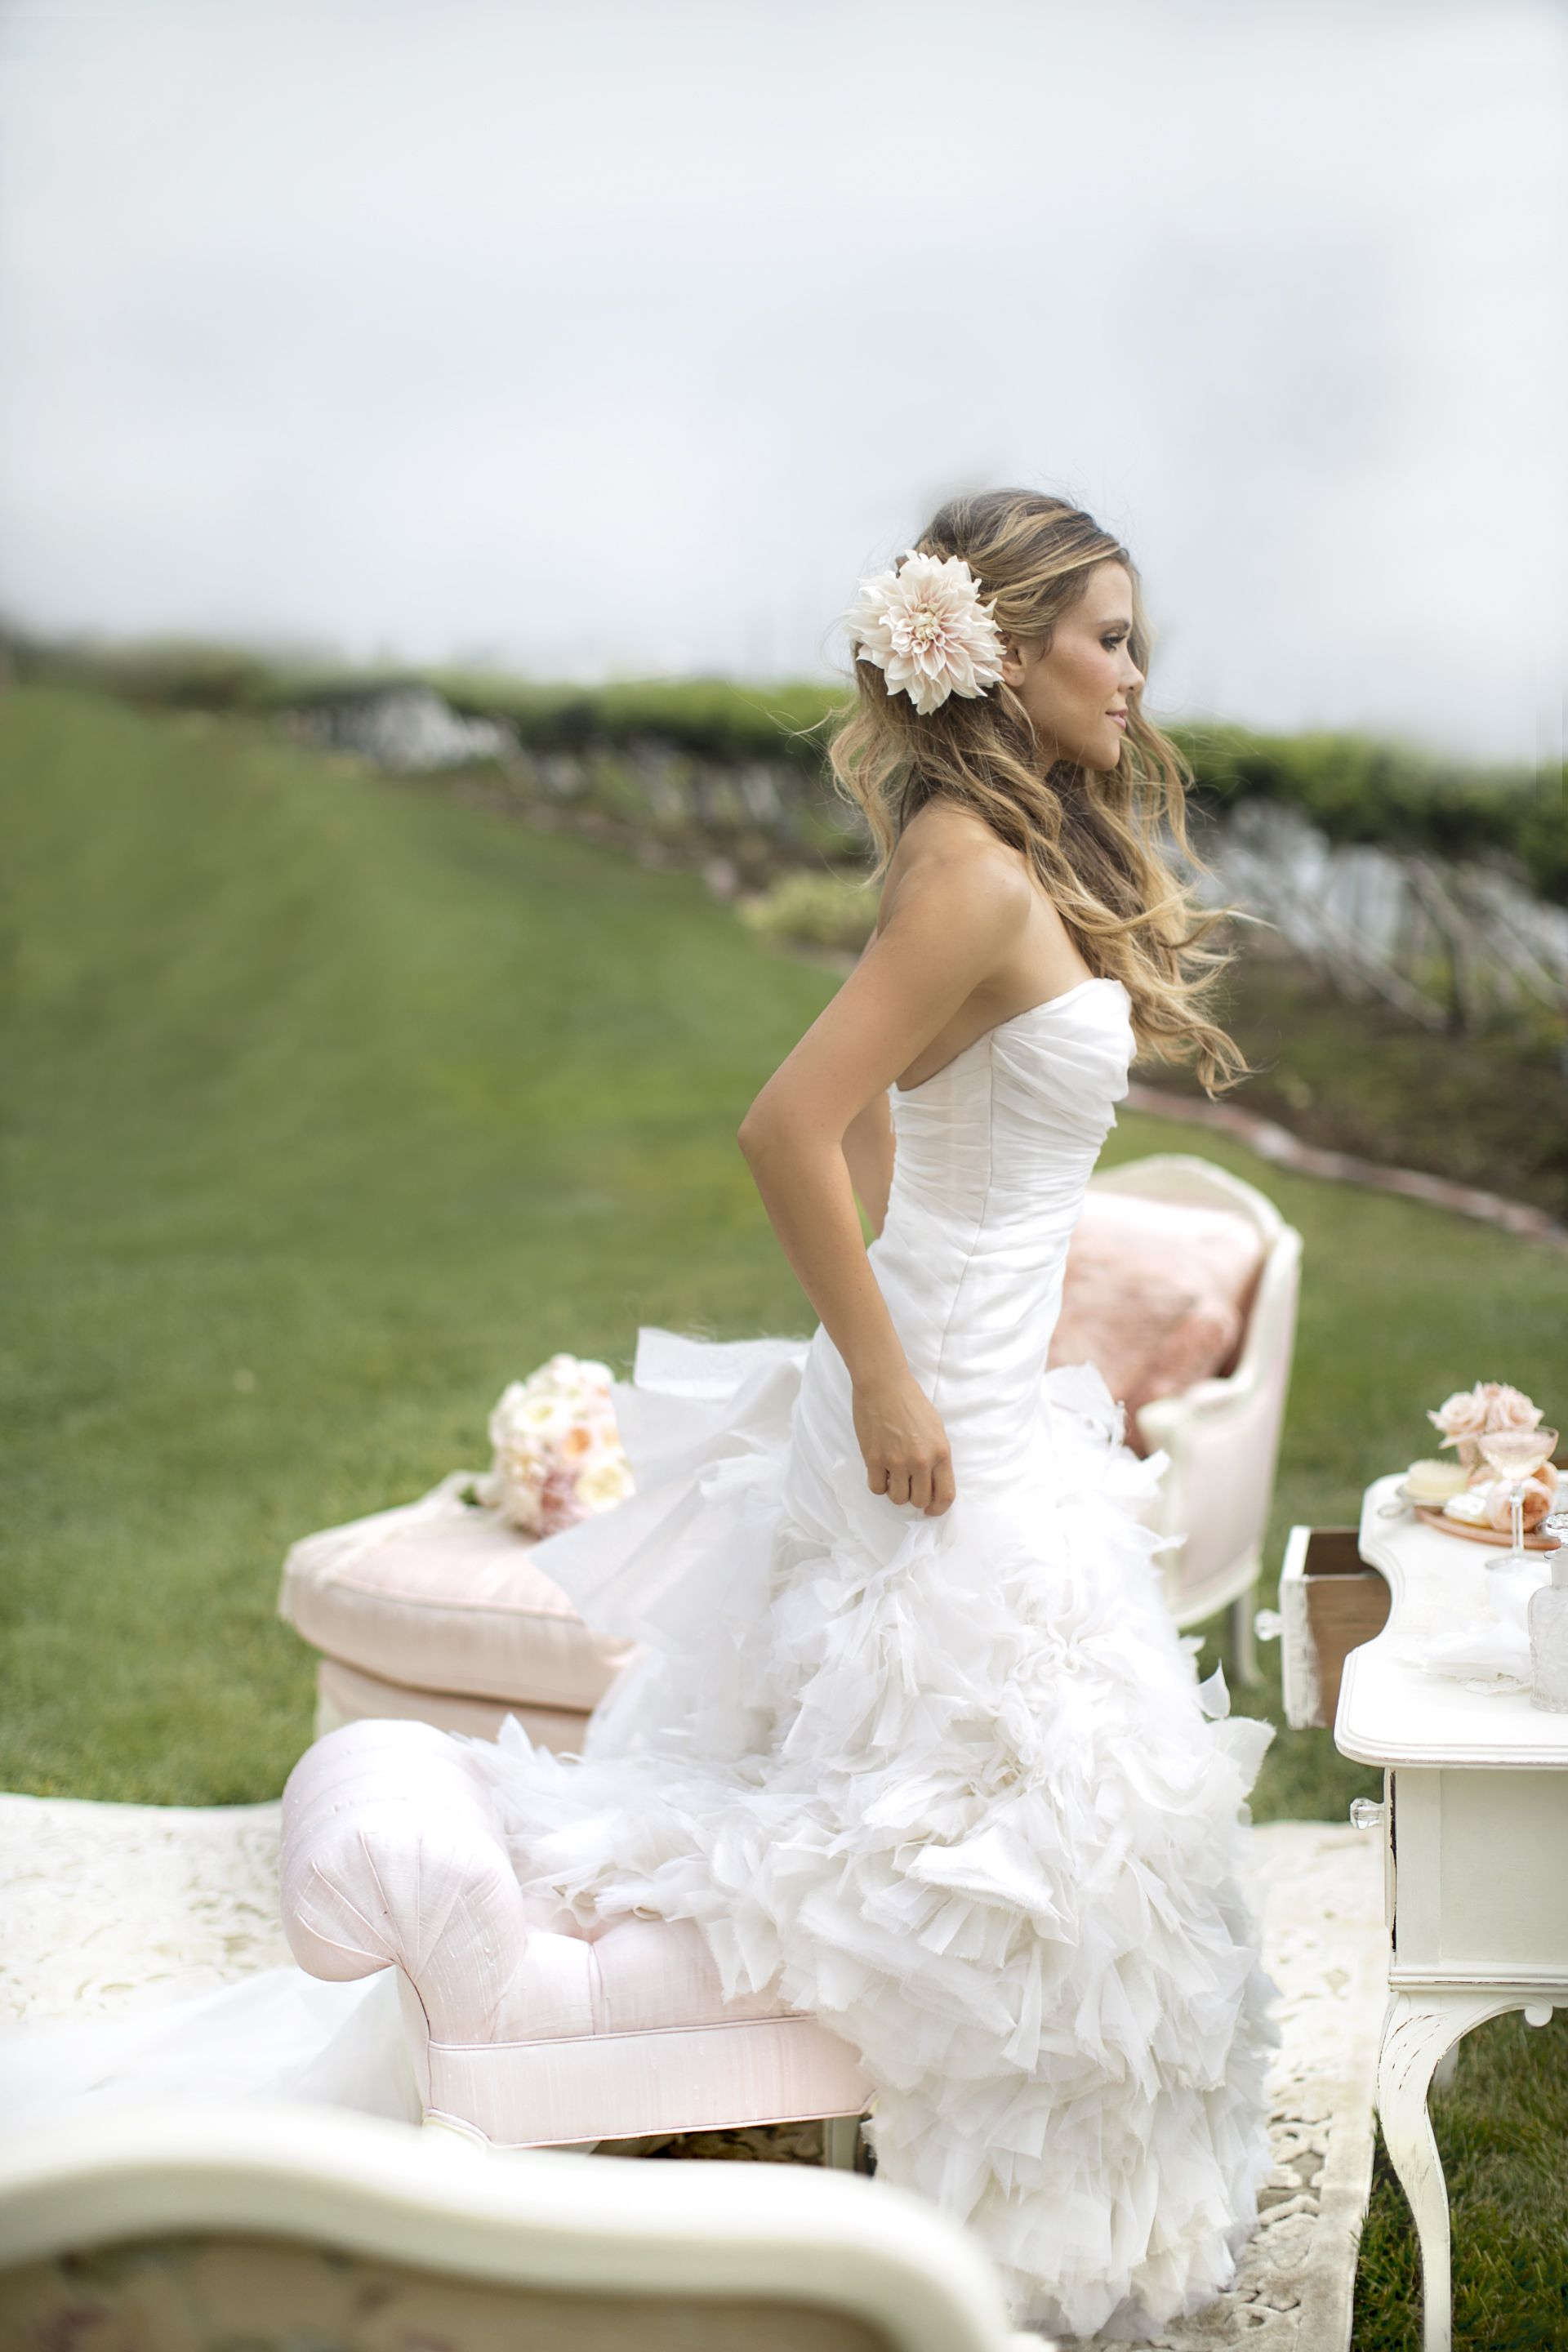 Lovely Bride on her wedding day! Katrina from Tone it up gets ...